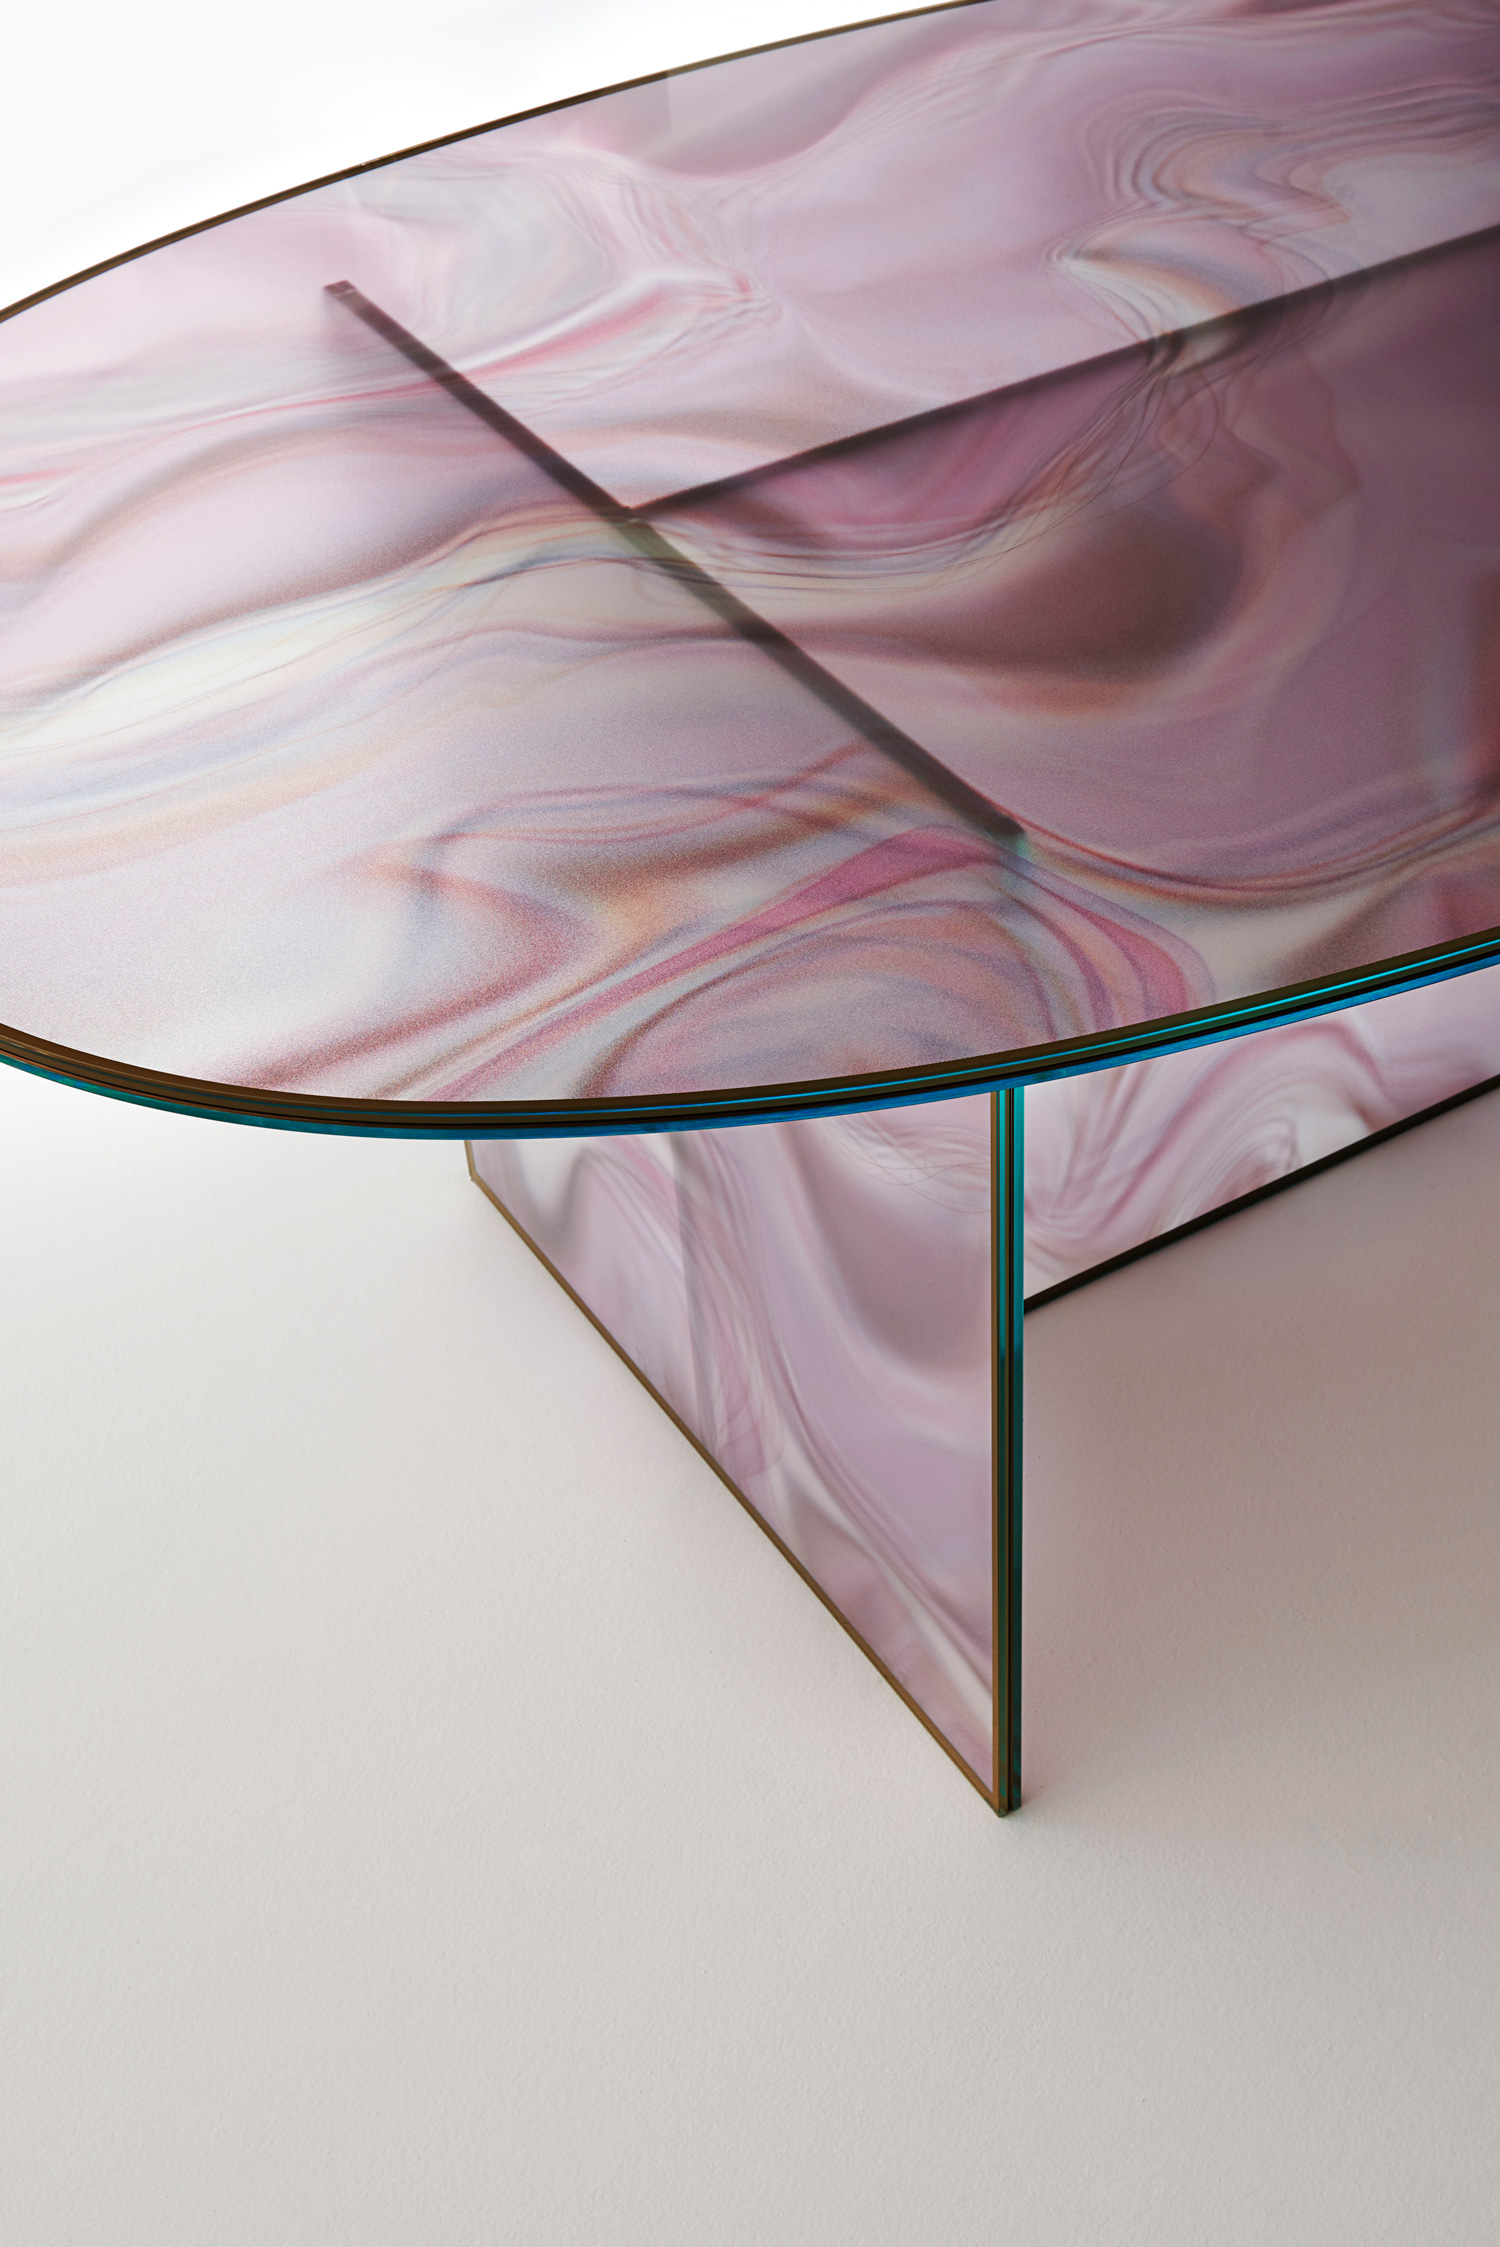 Liquefy Table by Patricia Urquiola for Glass Italia at Salone del Mobile 2017 | Yellowtrace